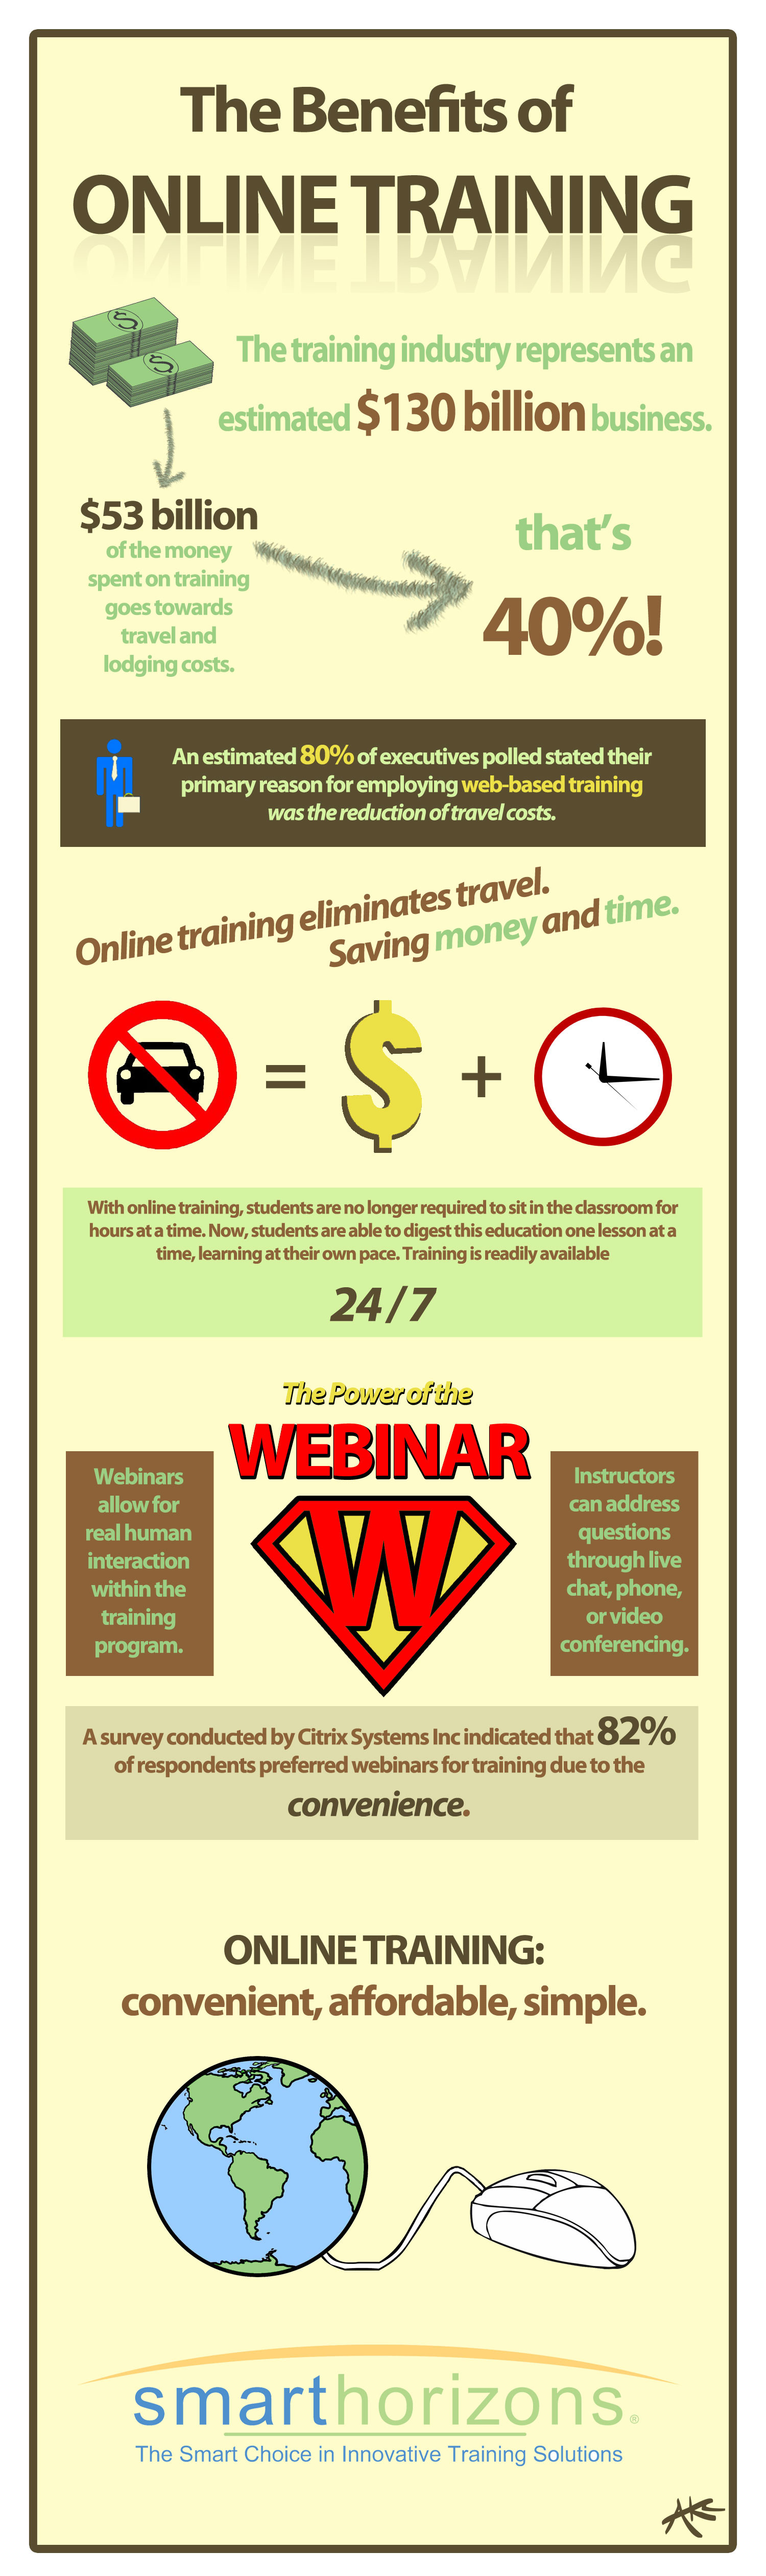 The Benefits of Online Training Infographic